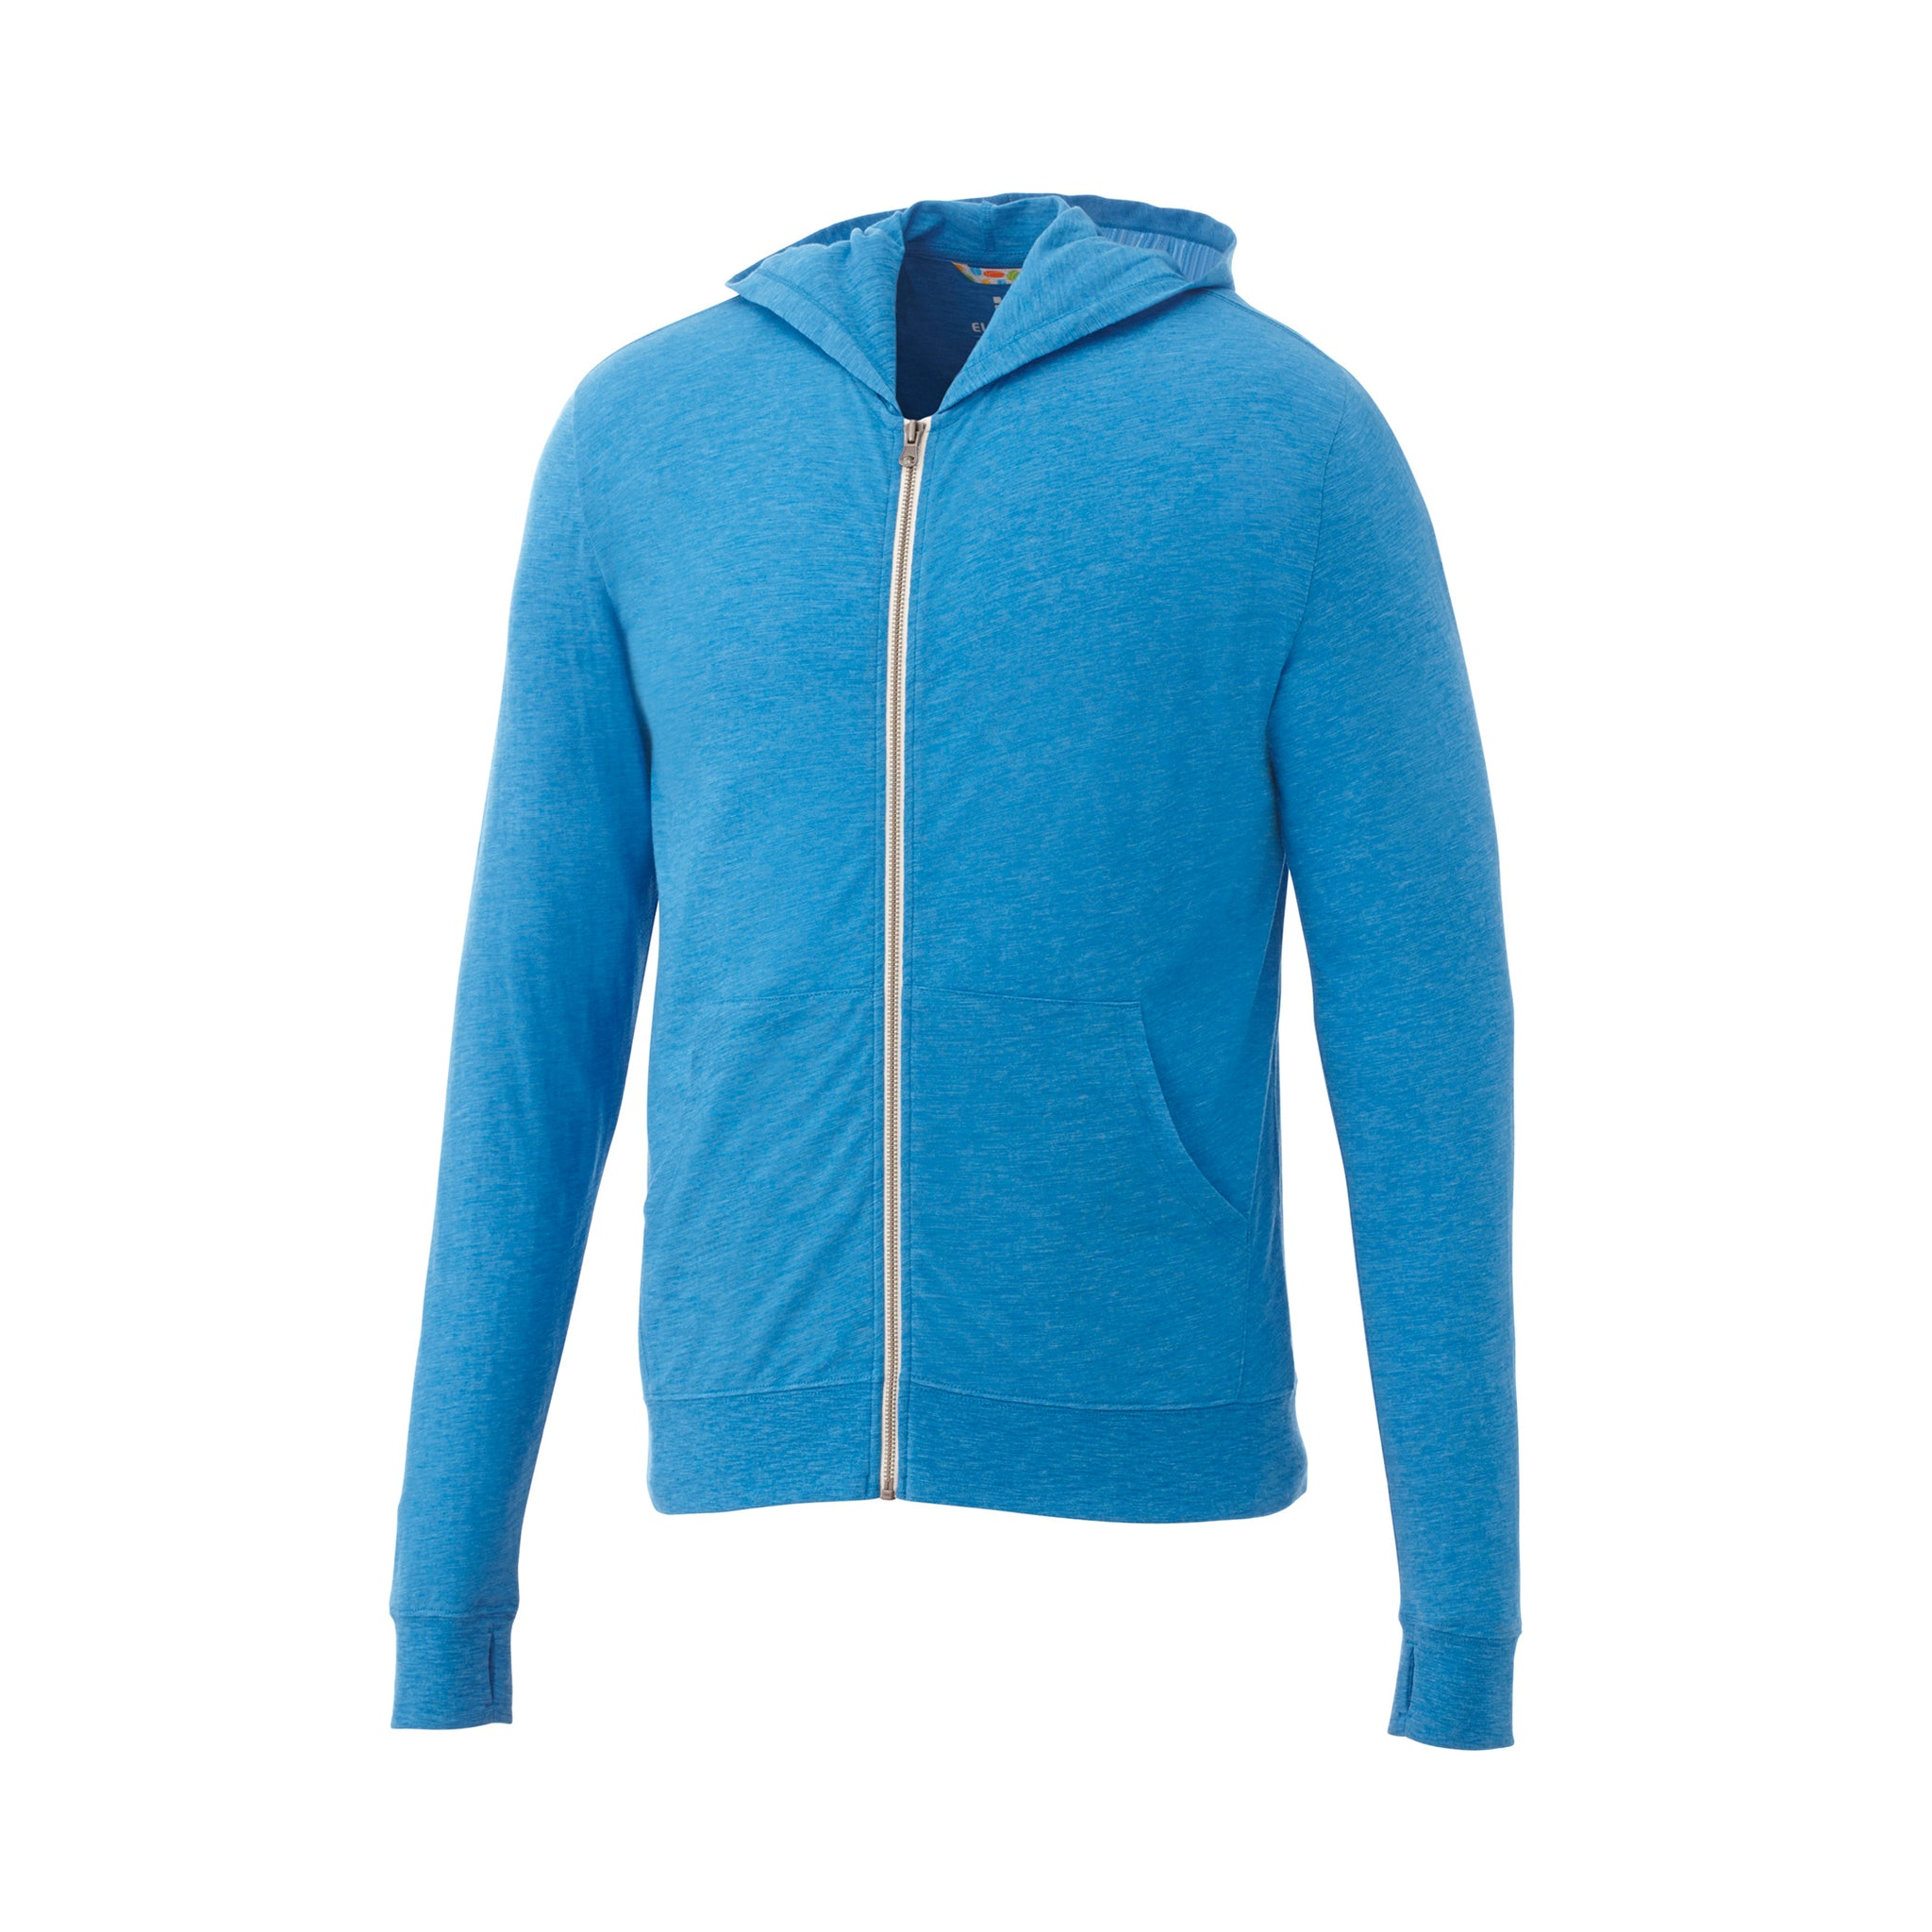 TRIMARK MEN'S GARNER KNIT FULL ZIP HOODY